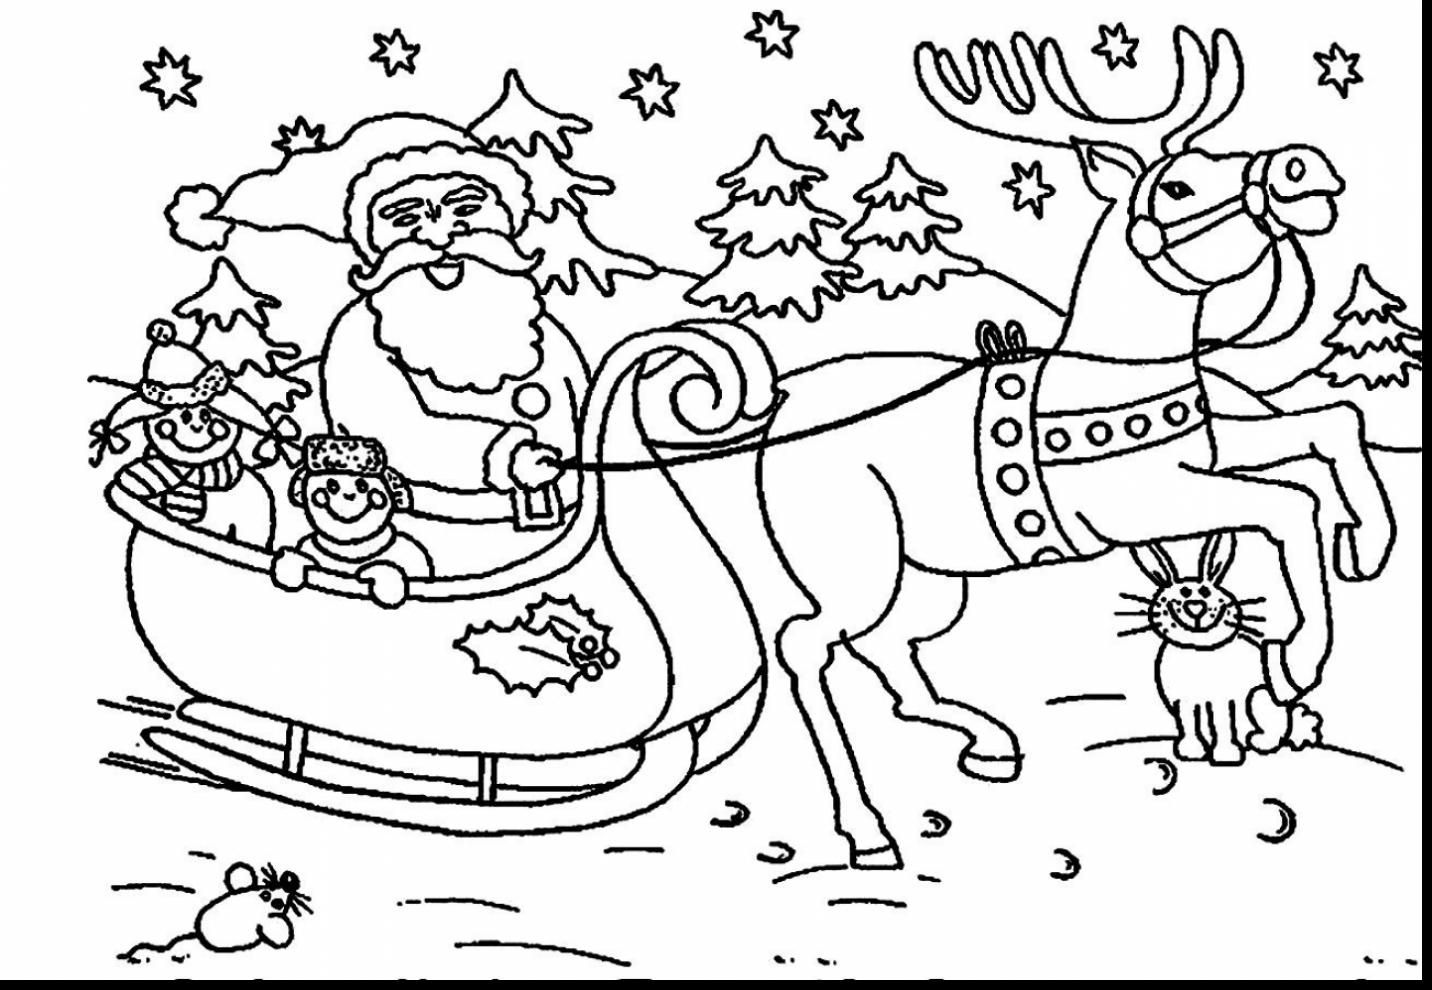 Reindeer Santa Claus Coloring Pages With Extraordinary Christmas Sleigh